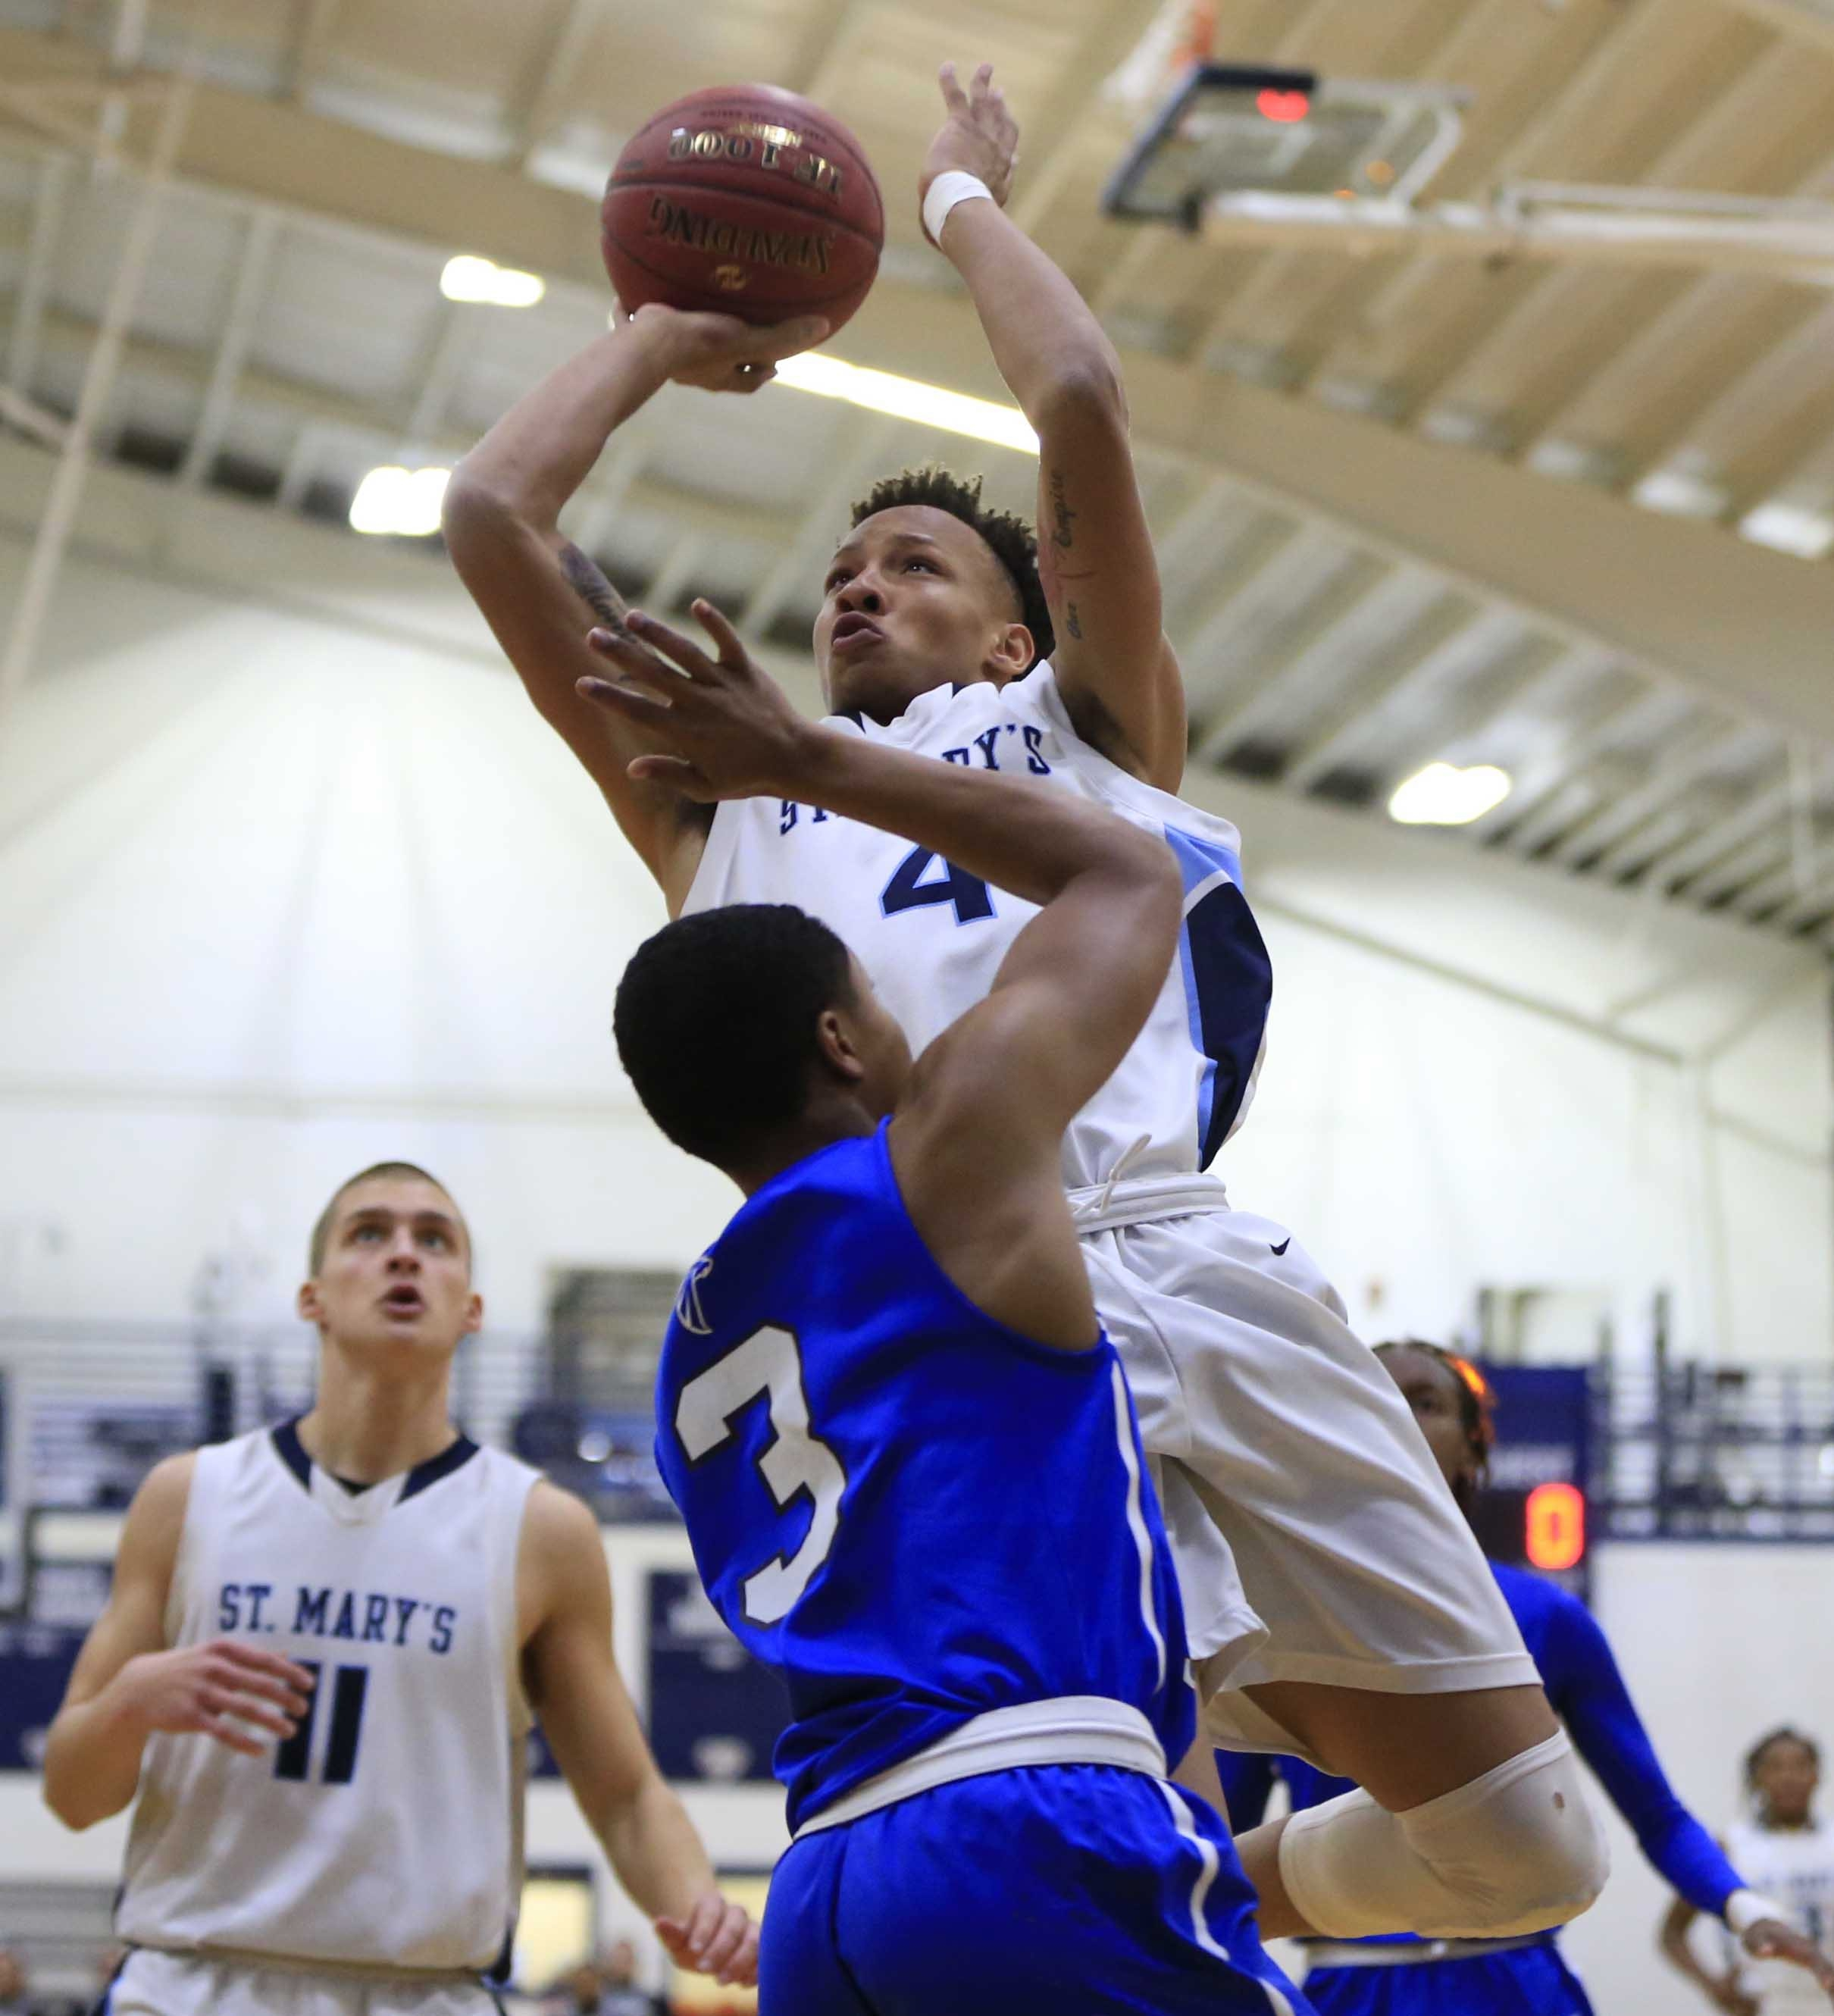 Takal Molson drives to the basket on Health Sciences' Kameron Briggs during the Lancers' 68-37 rout in Lancaster Wednesday.